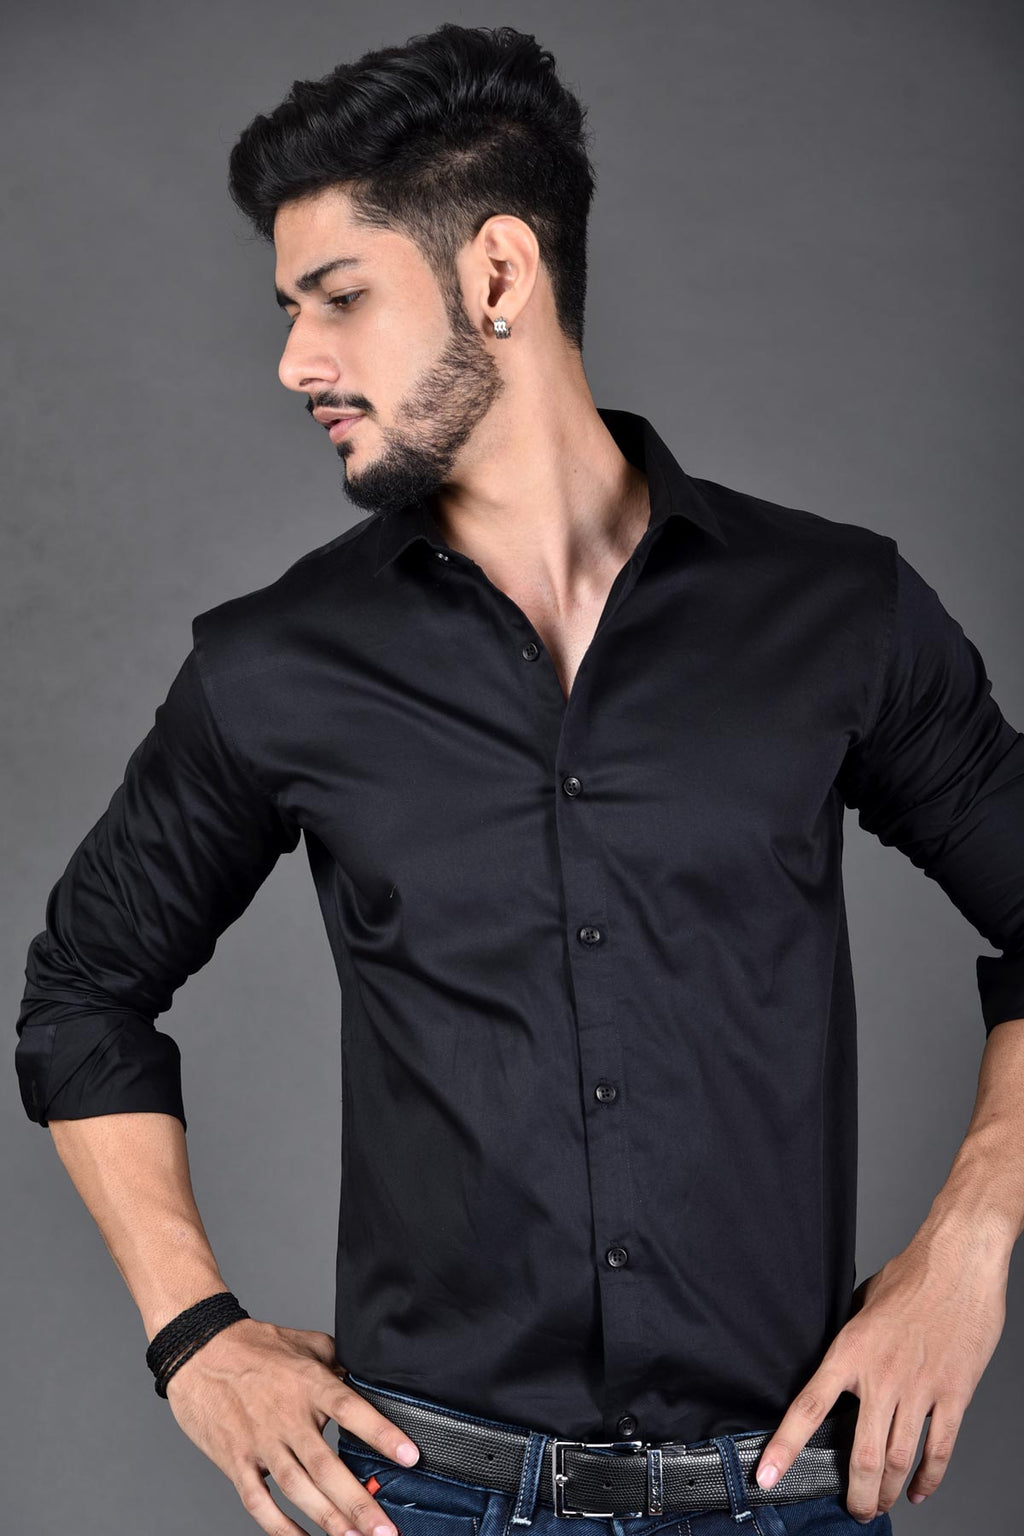 Z-Black Color party wear shirt | Beyours | Minimal clothing